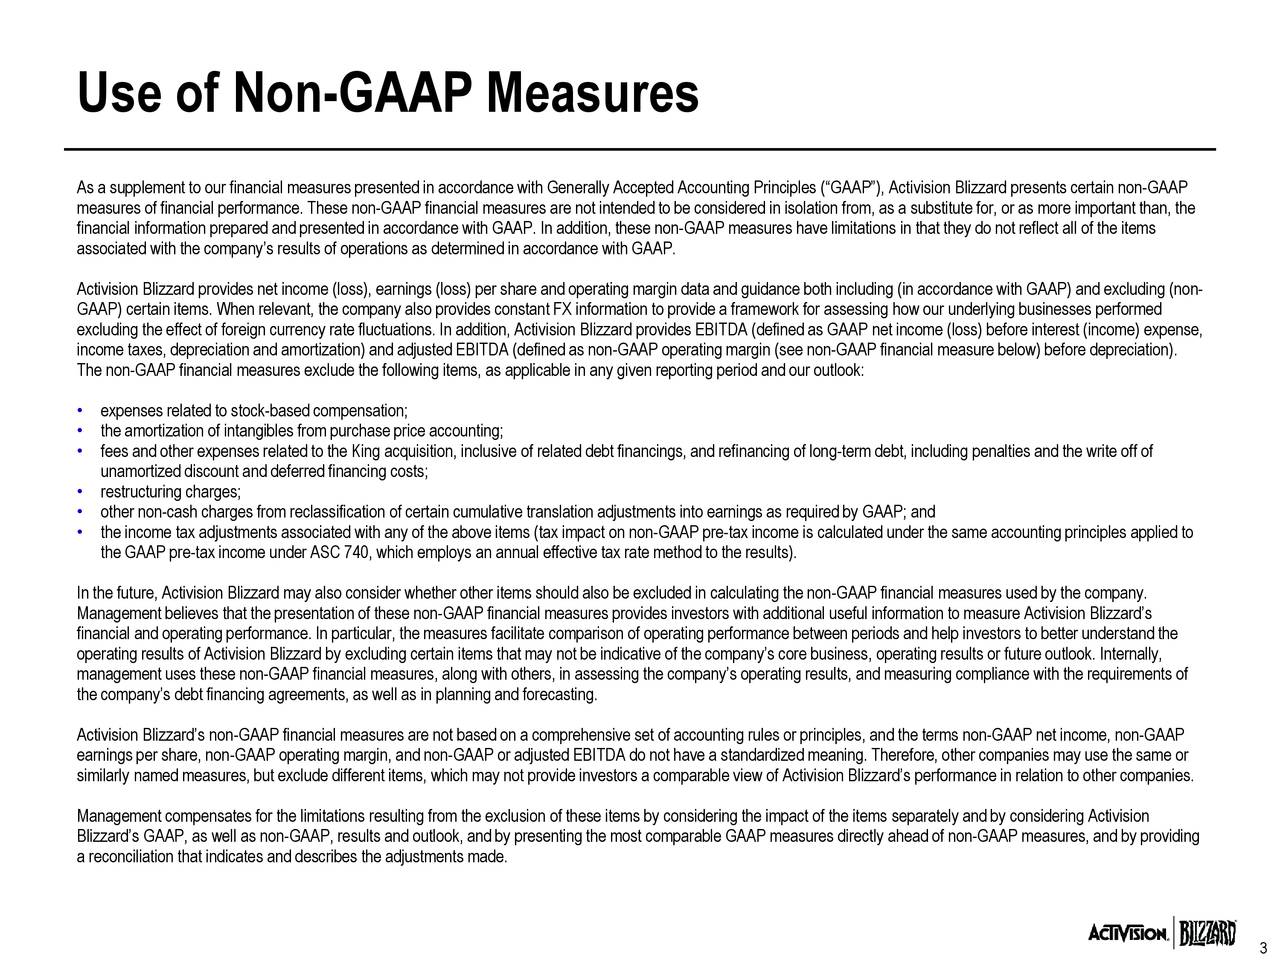 """As a supplement to our financial measures presented in accordance with Generally Accepted Accounting Principles (""""GAAP""""), Activision Blizzard presents certain non-GAAP measures of financial performance. These non-GAAP financial measures are not intendedto be considered in isolation from, as a substitute for, or as more important than, the financial information preparedand presentedin accordance with GAAP. In addition, these non-GAAP measures have limitations in that they do not reflect all of the items associated with the company's results of operations as determined in accordance with GAAP. Activision Blizzard provides net income (loss), earnings (loss) per share and operating margin data and guidance both including (in accordance with GAAP) and excluding (non- GAAP) certain items. When relevant, the company also provides constant FX information to provide a framework for assessing how our underlying businesses performed excluding the effect of foreign currency rate fluctuations. In addition, Activision Blizzard provides EBITDA (definedas GAAP net income (loss) before interest (income) expense, income taxes, depreciation and amortization) and adjusted EBITDA (defined as non-GAAP operatingmargin (see non-GAAP financial measure below) before depreciation). The non-GAAP financial measures exclude the following items, as applicable in any given reporting period and our outlook: • expenses related to stock-based compensation; • the amortization of intangibles from purchase price accounting; • fees and other expenses related to the King acquisition, inclusive of related debt financings, and refinancing of long-term debt, including penalties and the write off of unamortized discount and deferredfinancing costs; • restructuring charges; • other non-cash charges from reclassification of certain cumulative translation adjustments into earnings as requiredby GAAP; and • the income tax adjustments associated with any of the above items (tax impact on non-GAAP pre-tax income is"""